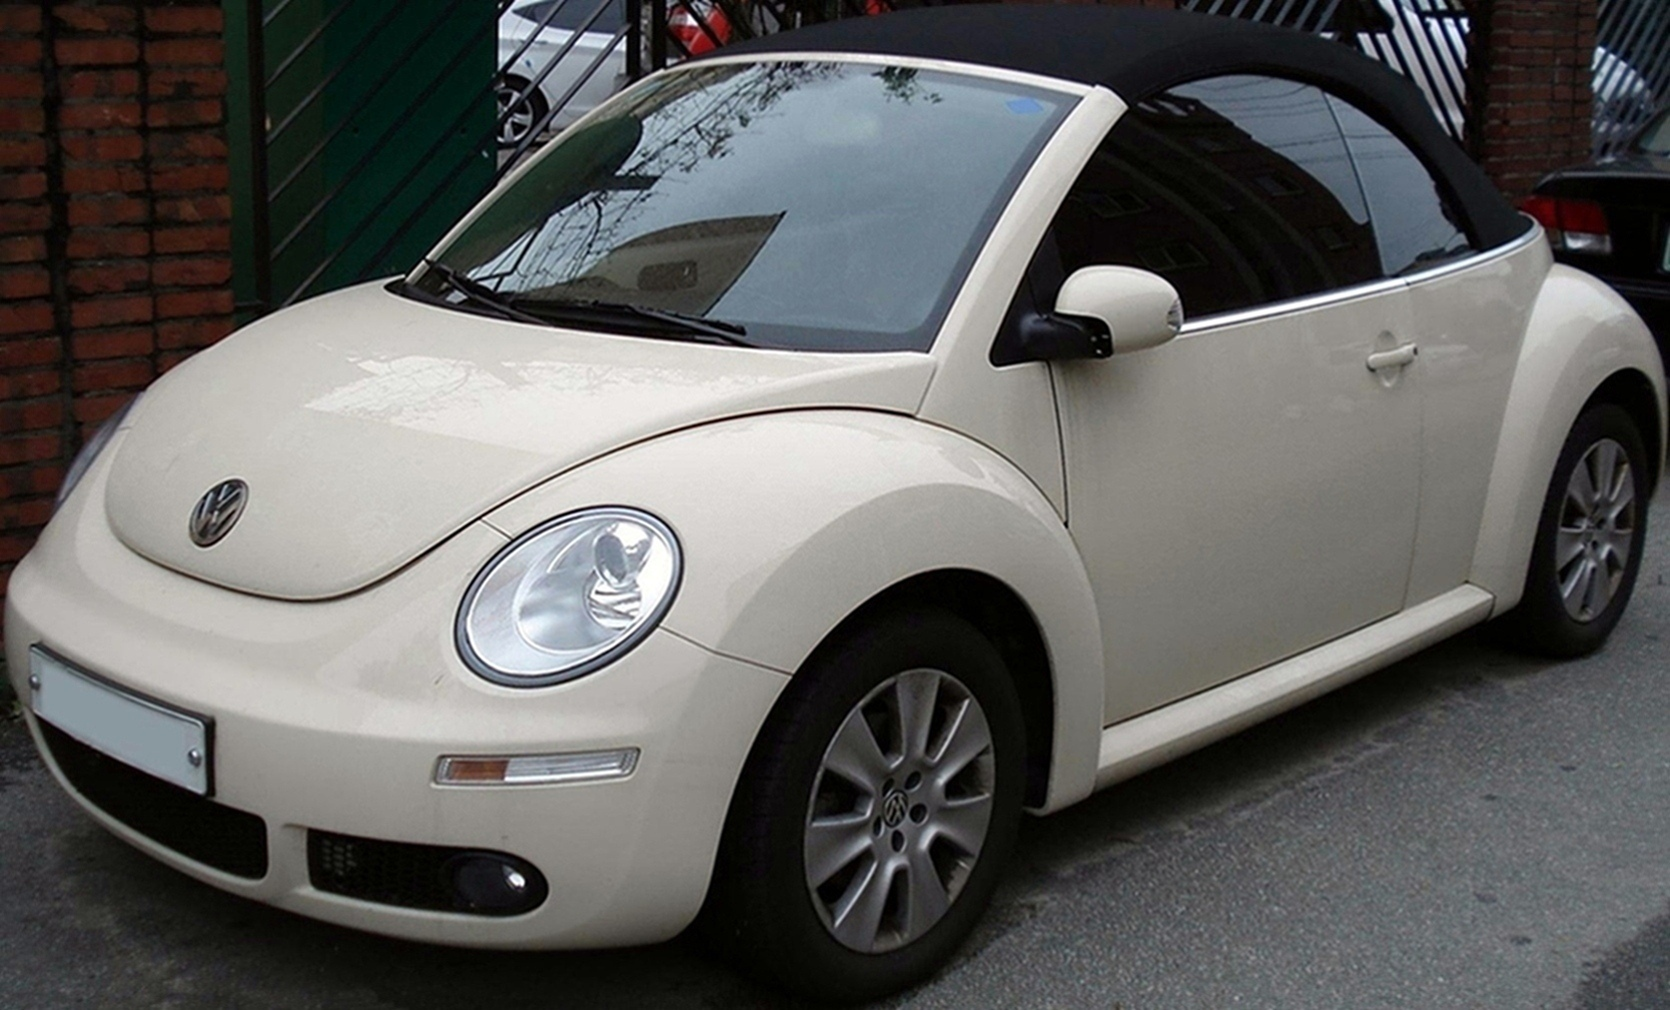 20100922 volkswagen new beetle cabriolet. Black Bedroom Furniture Sets. Home Design Ideas